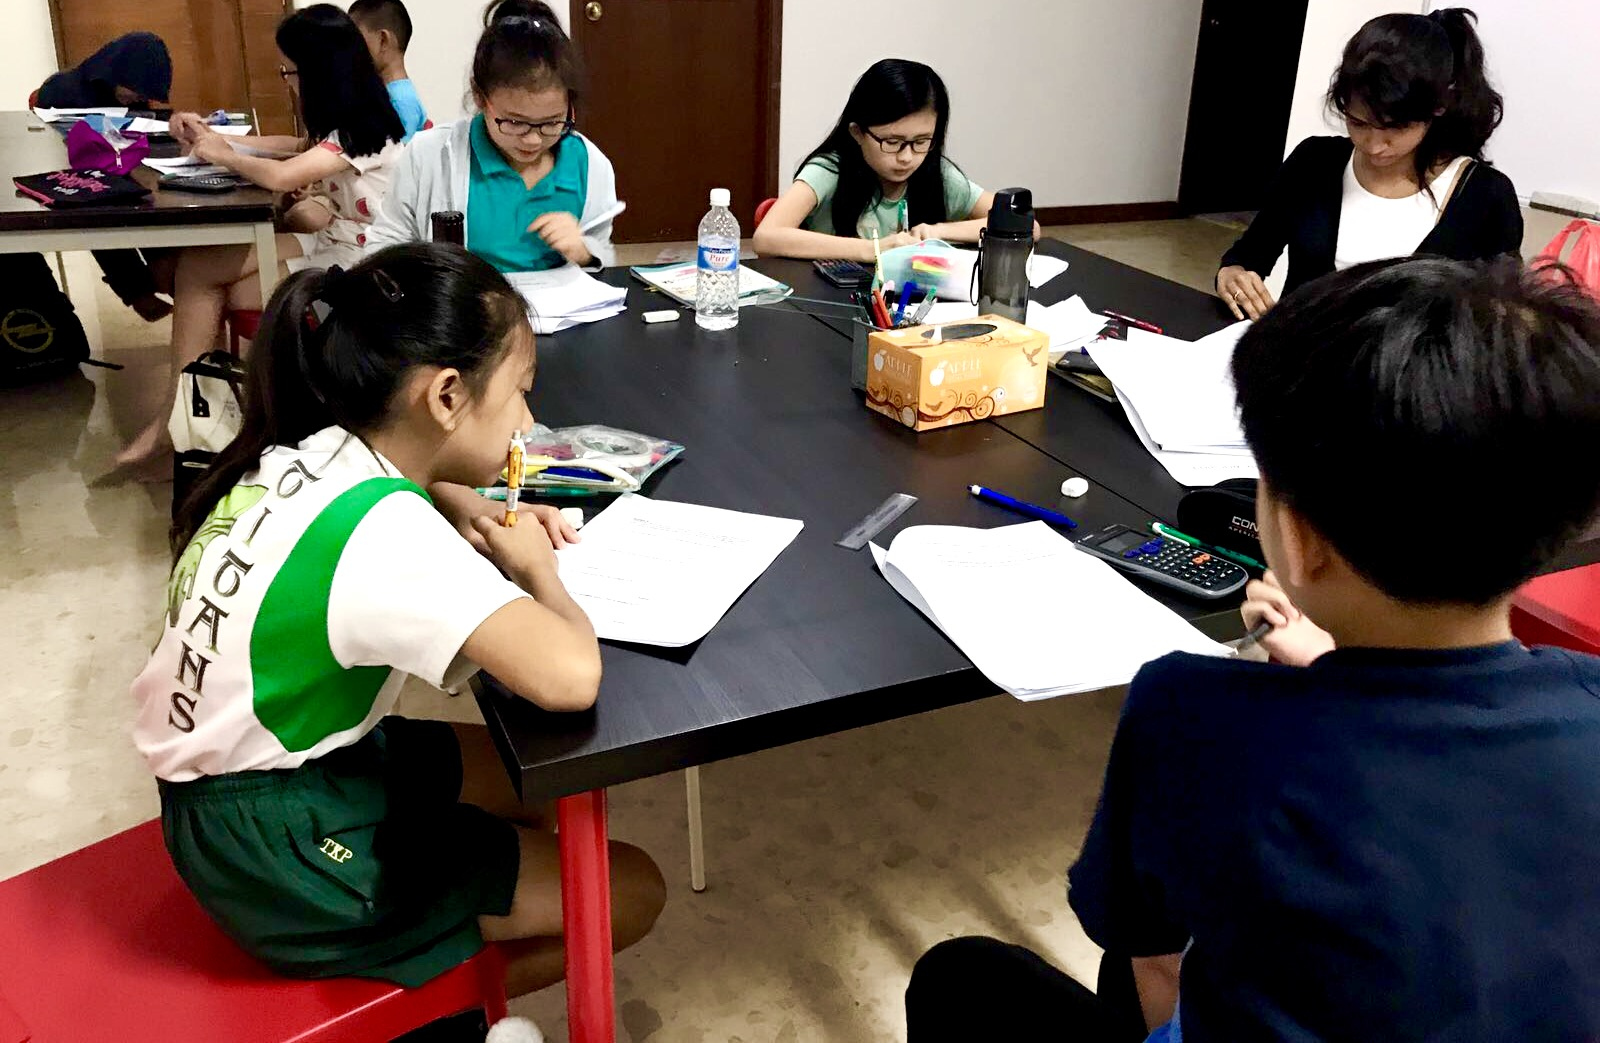 v#singaporetuitioncentre #sgtutor #sg #edukatesg #followedukate #bestsingaporetuitioncentre Singapore Punggol Tuition Centre English Math Science Tutor Small Group Pri Sec Primary Secondary Add Math E Math Physics Science Classes Enrichment program Good Tuition Centre